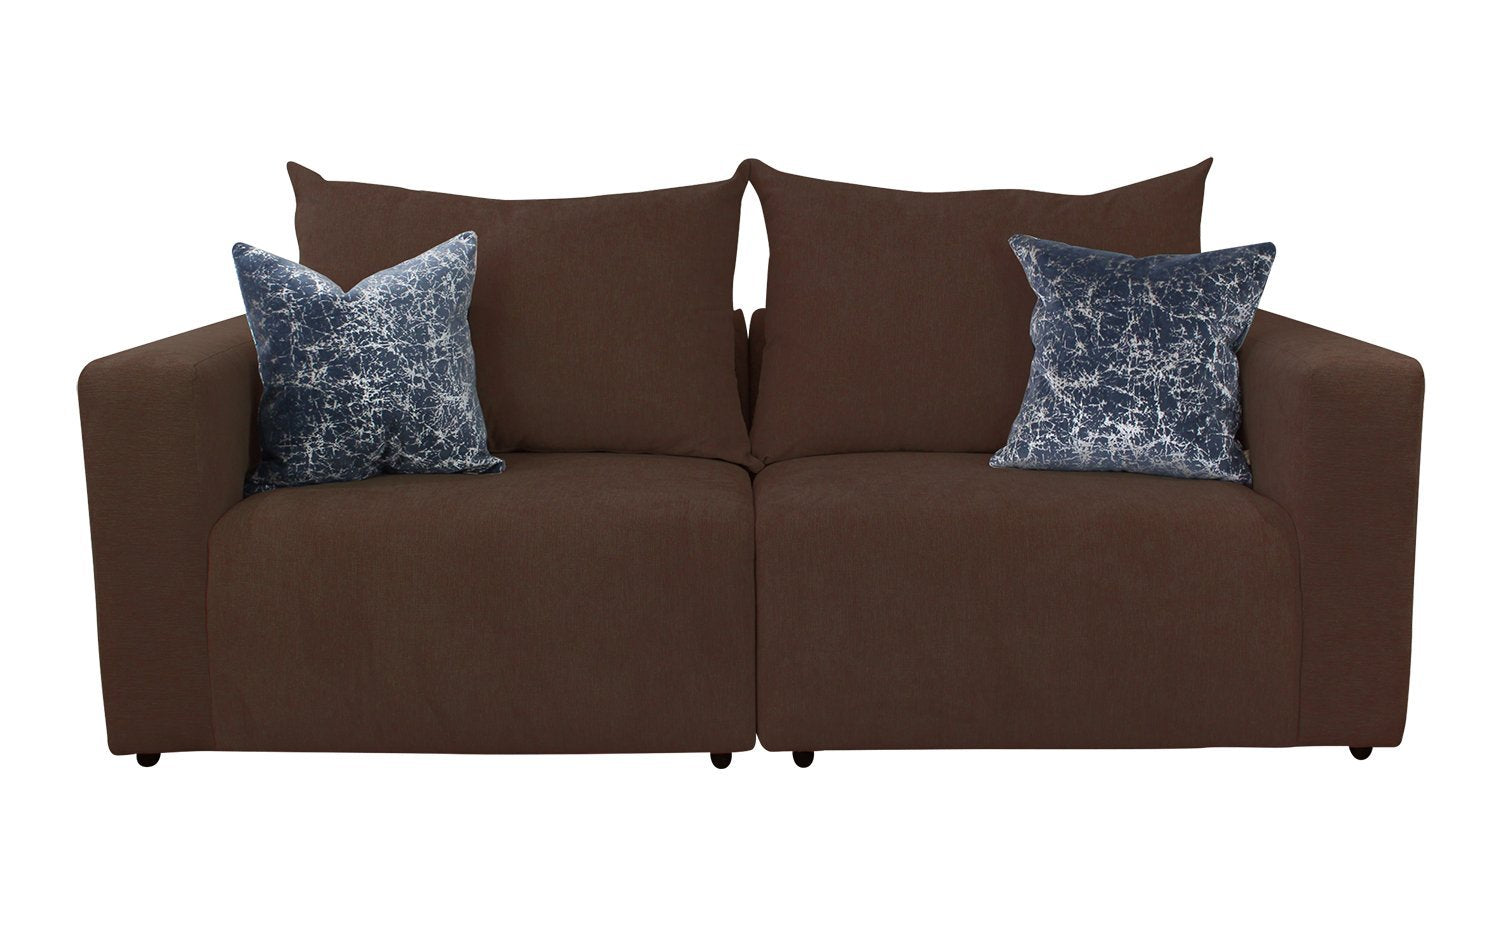 Pulse 3-Seater Sofa - Mocha